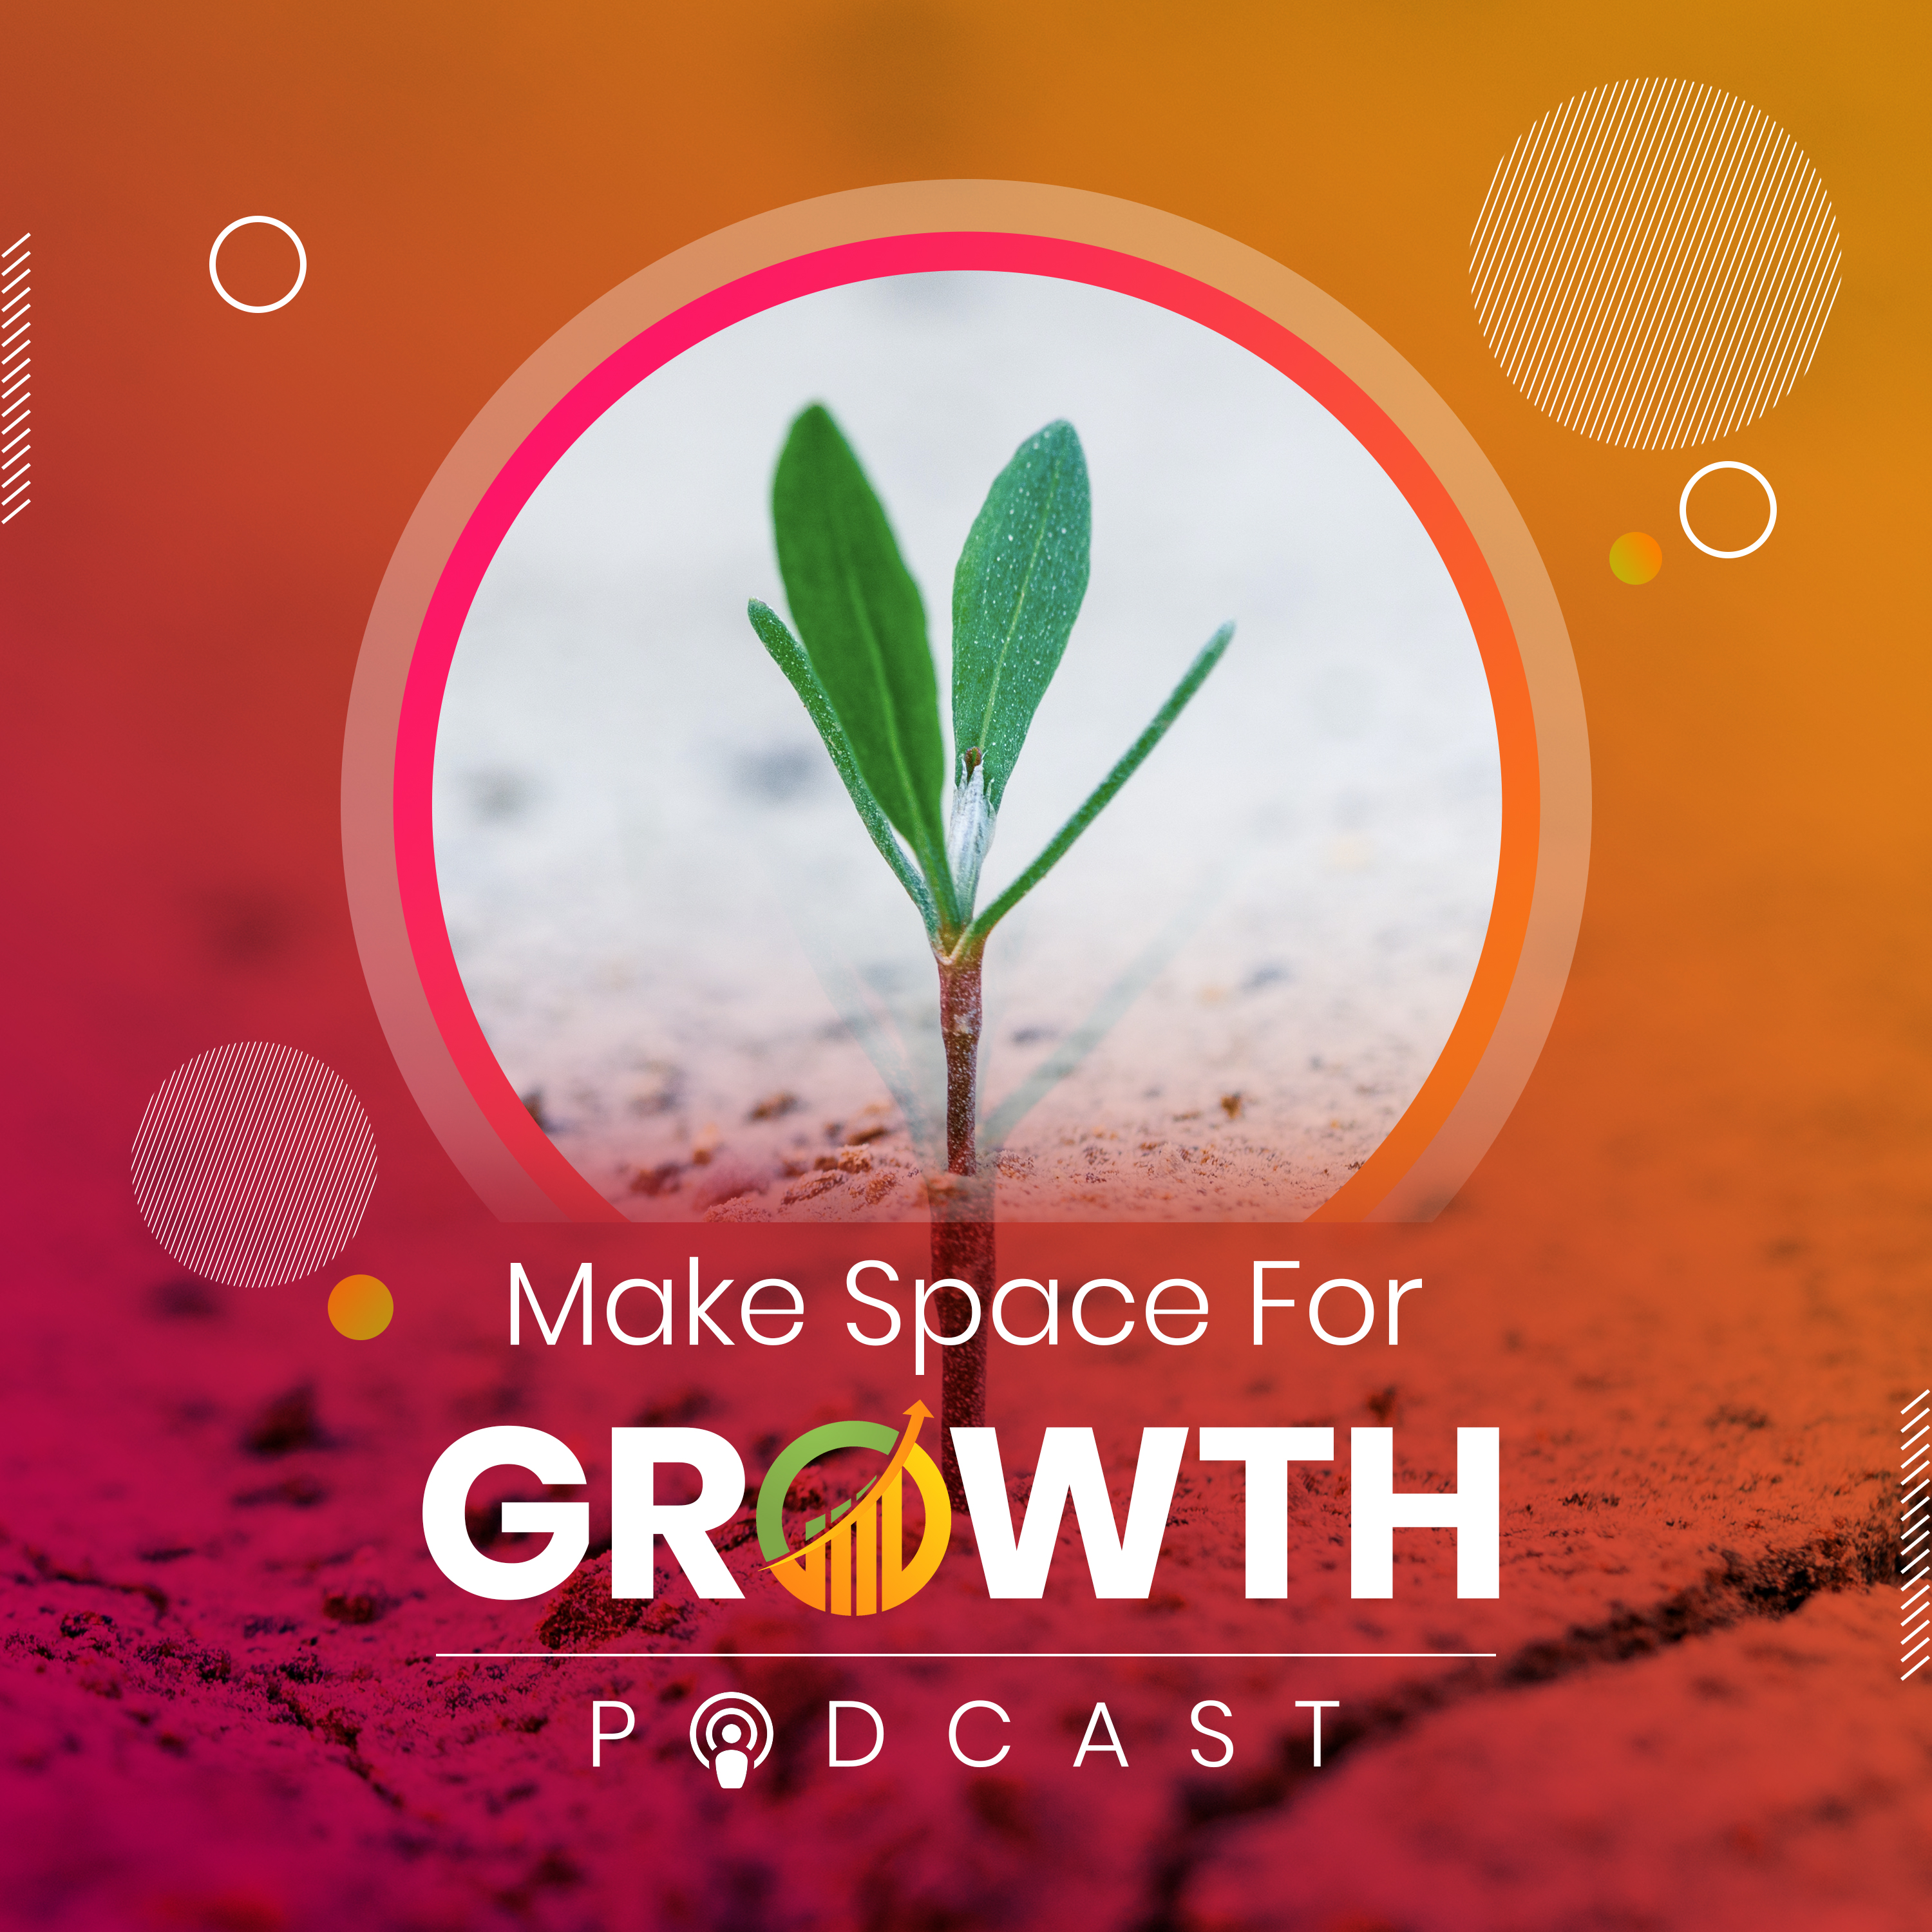 Make Space for Growth Podcast show art